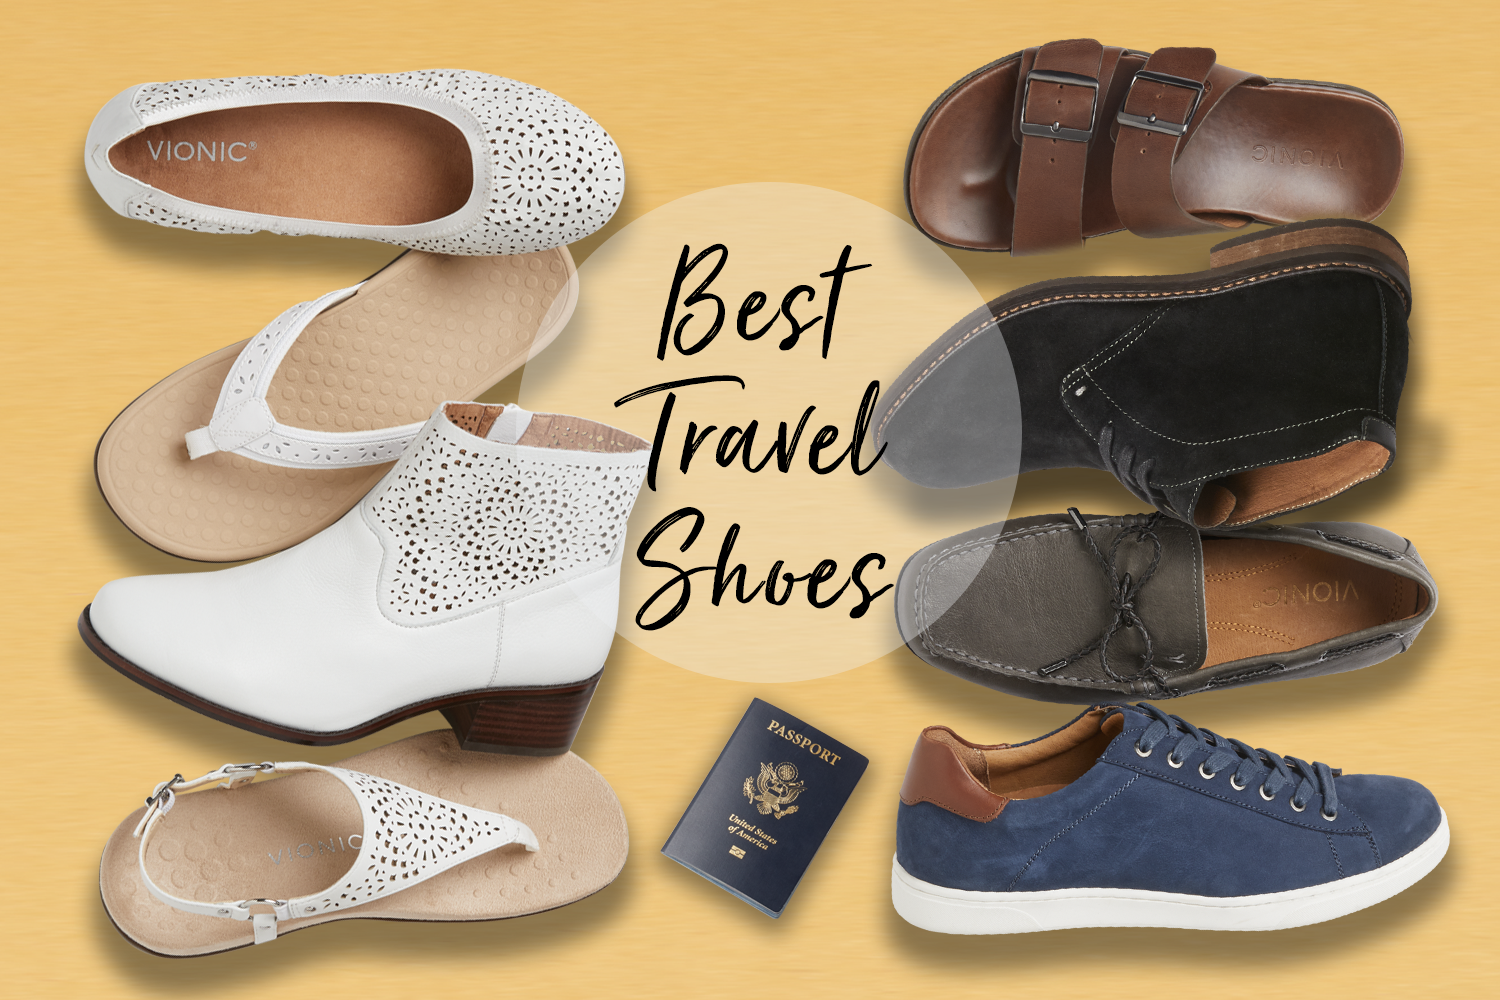 Best Travel Shoes for 2020 I Vionic Shoes